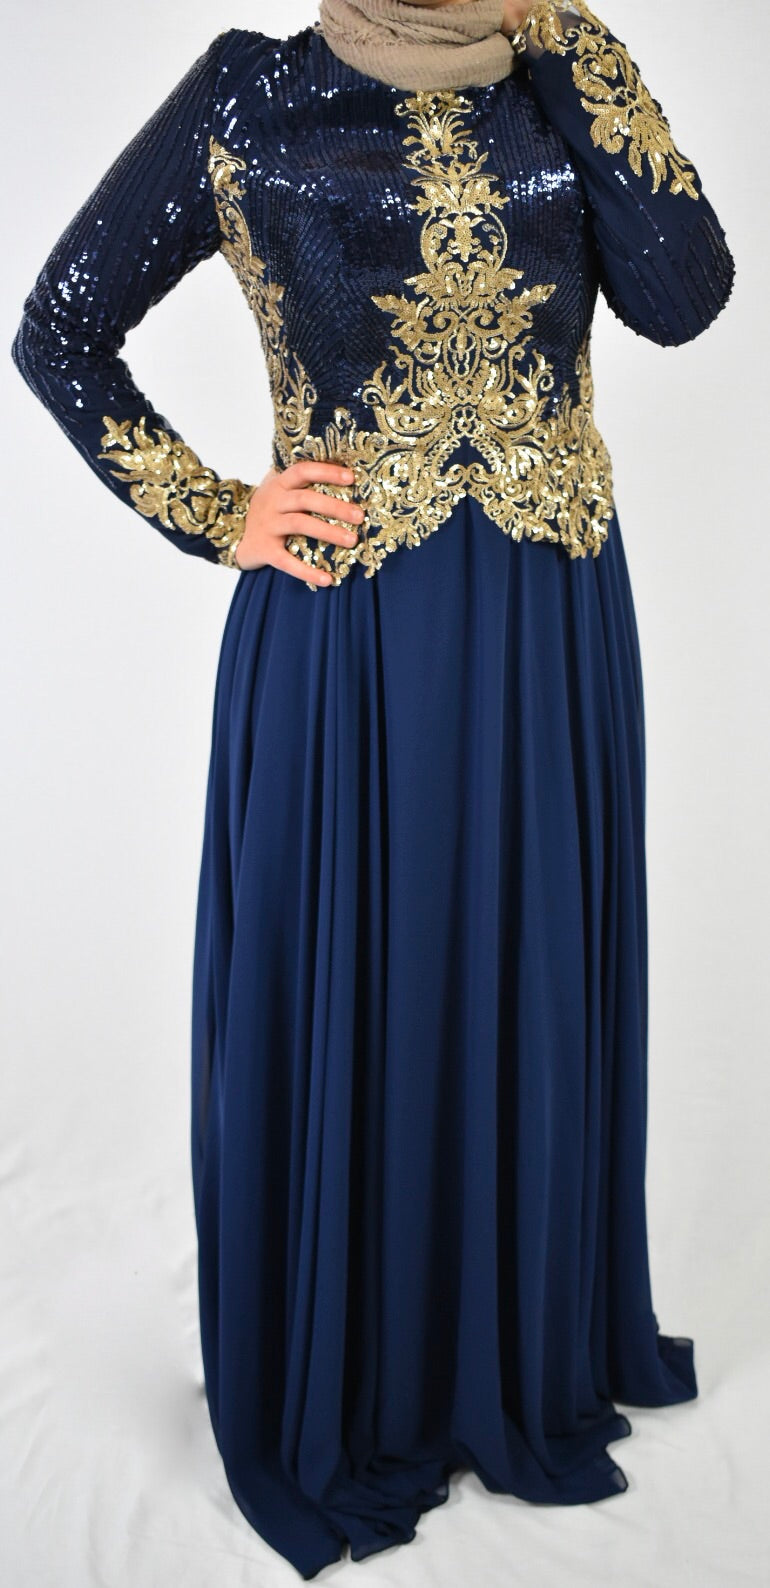 Elegant Evening Dress - Navy